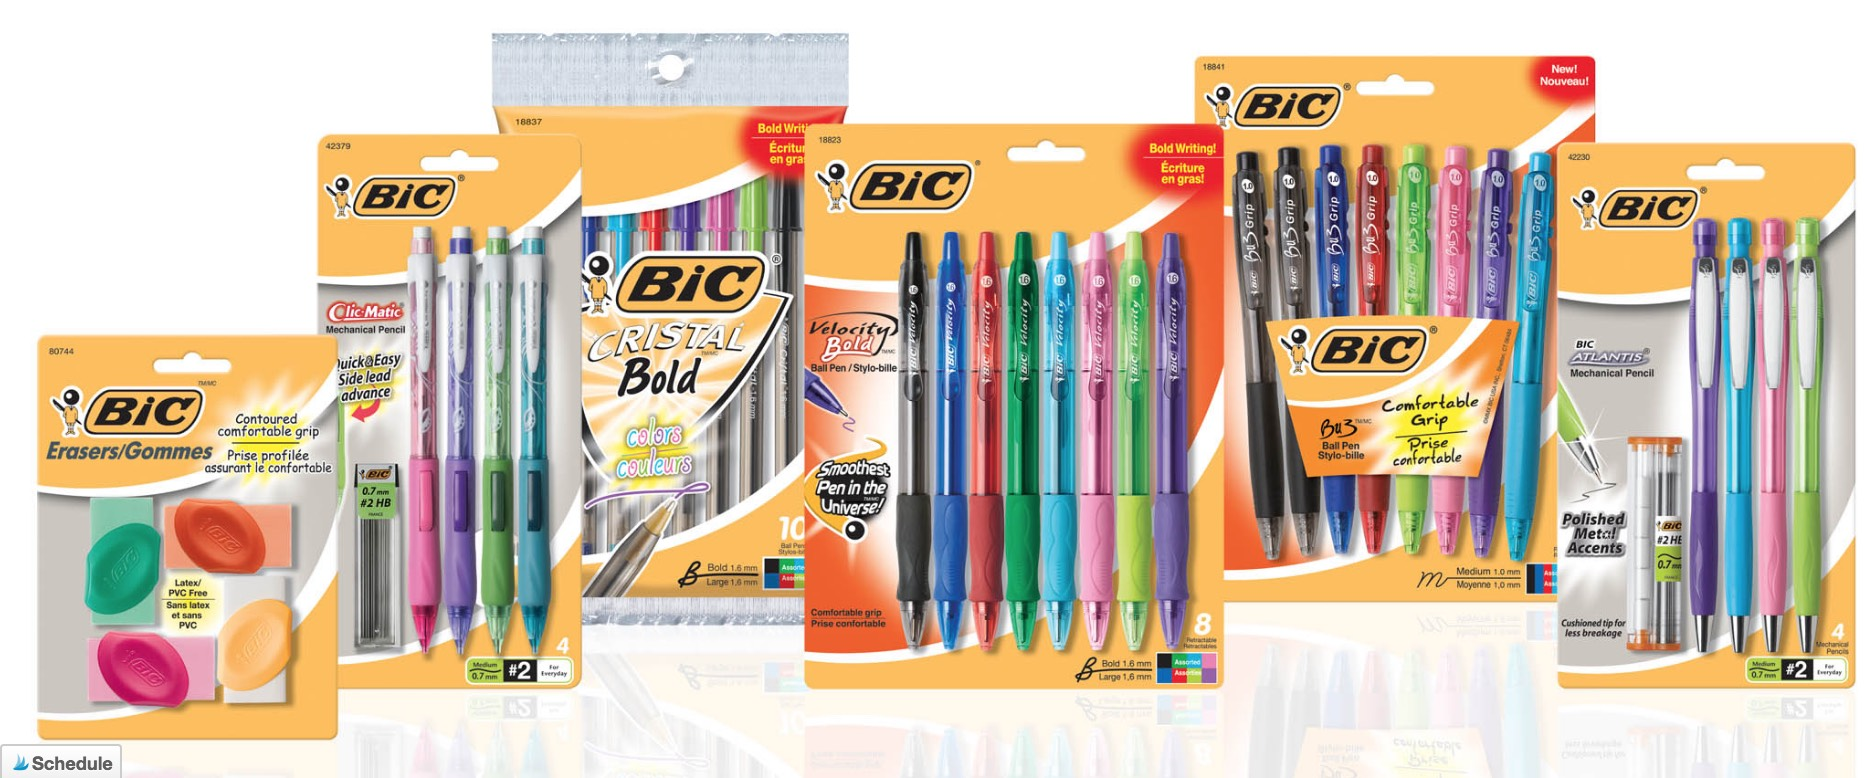 FREE BIC Stationary Products (Pens, Pencils and more!)